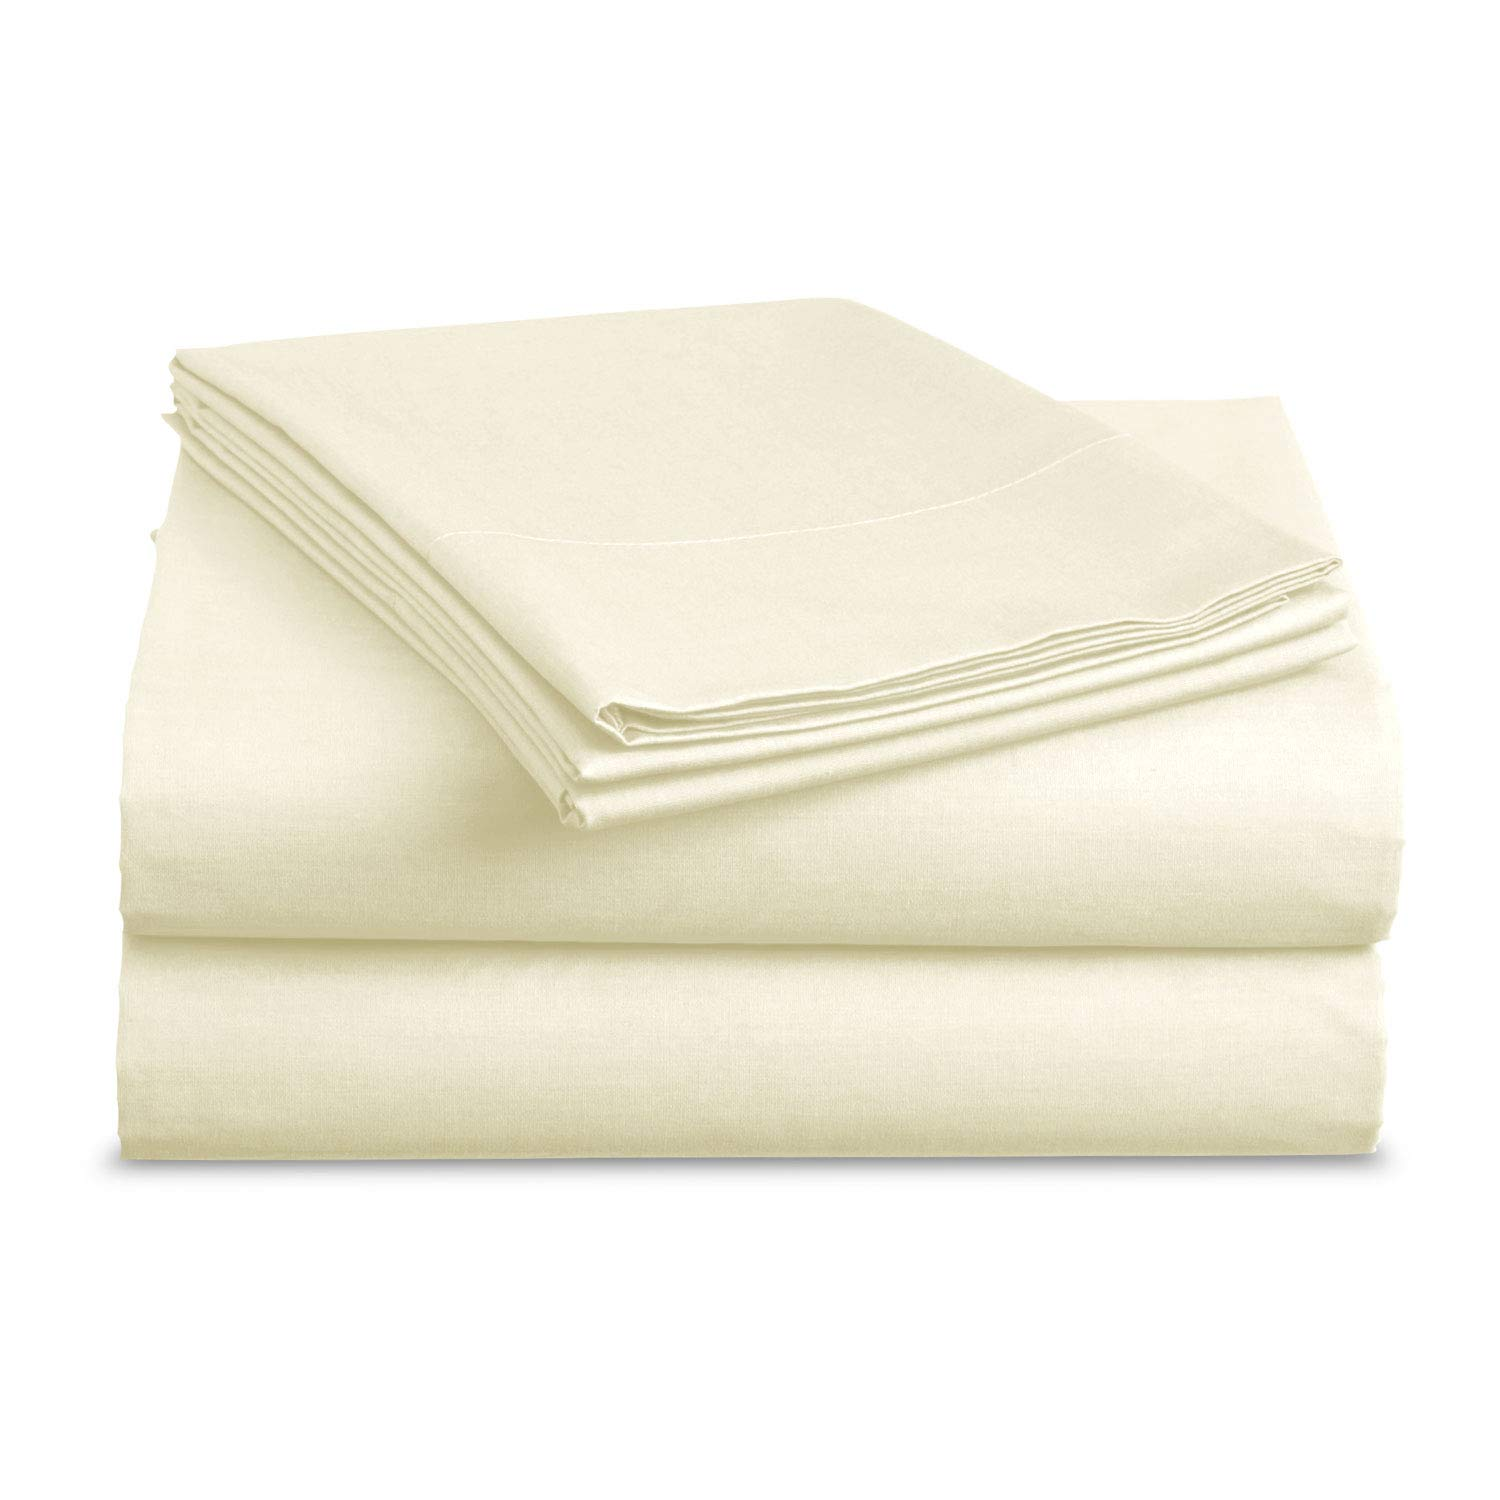 BASIC CHOICE Bed Sheet Set - Brushed Microfiber 2000 Bedding - Wrinkle, Fade, Stain Resistant - Hypoallergenic - 4 Piece (Full, Vanilla)